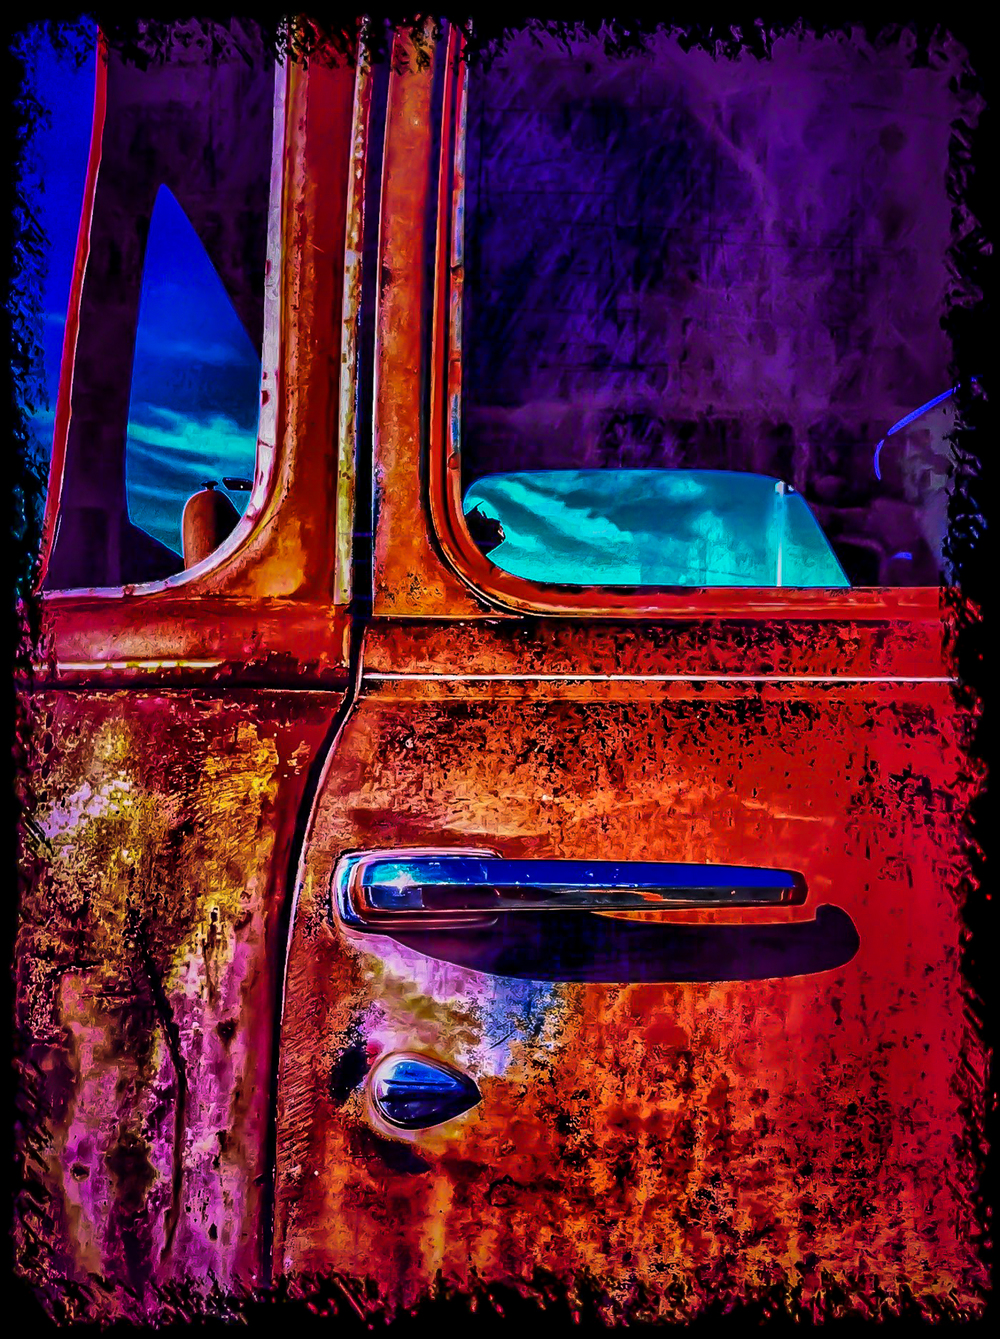 The Rusty Truck Project